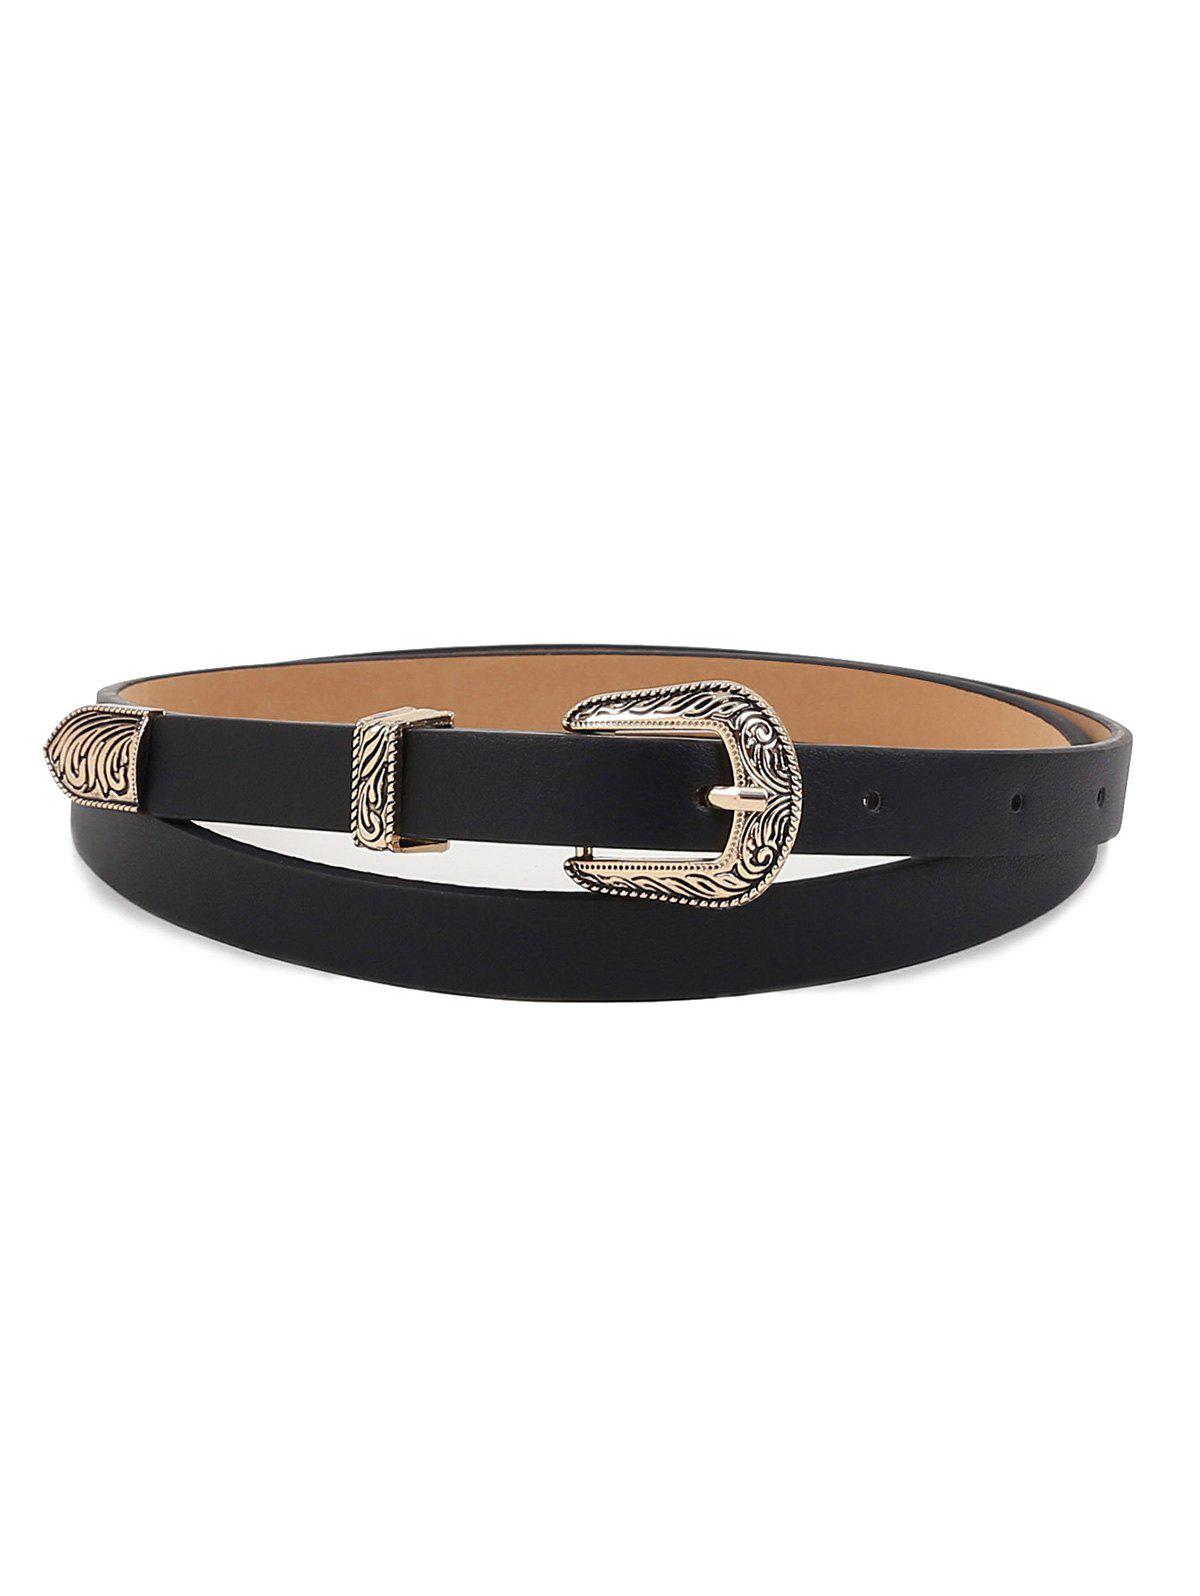 Retro Carving Buckle Faux Leather Dress Belt - BLACK